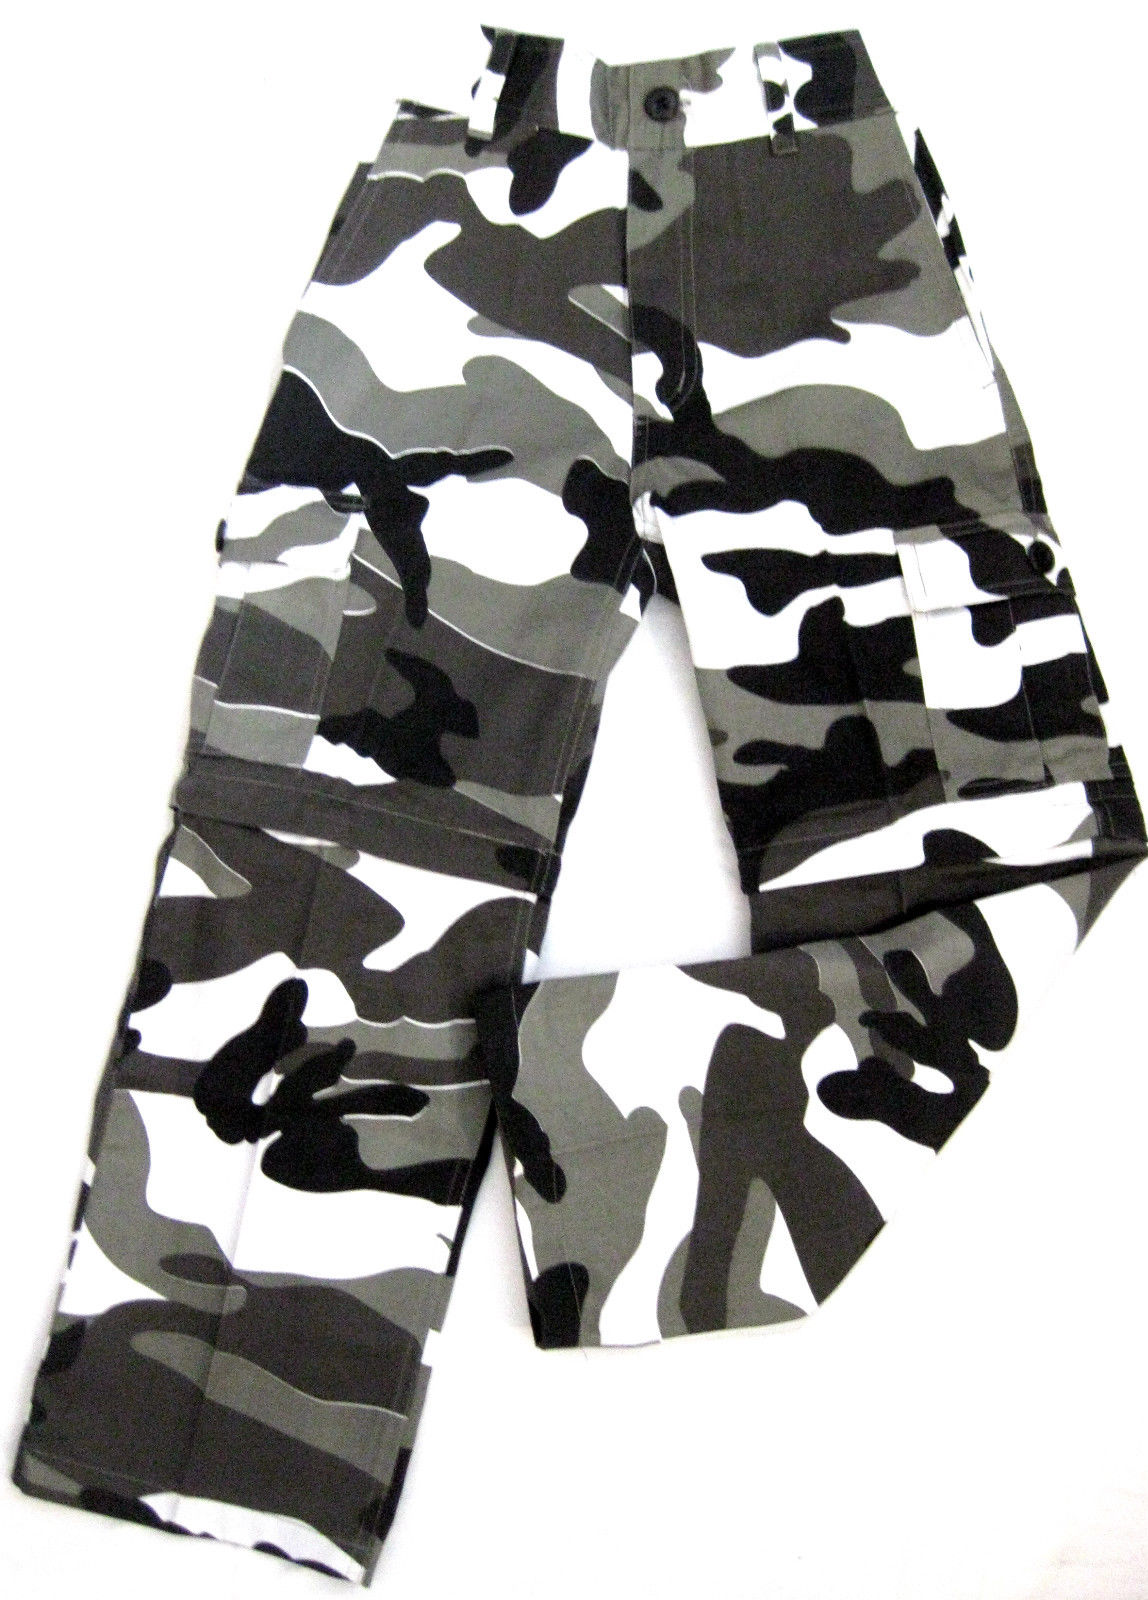 mfh us kinder zip off hose schneetarn metro camo bdu hose tarnhose kids 140 152 ebay. Black Bedroom Furniture Sets. Home Design Ideas